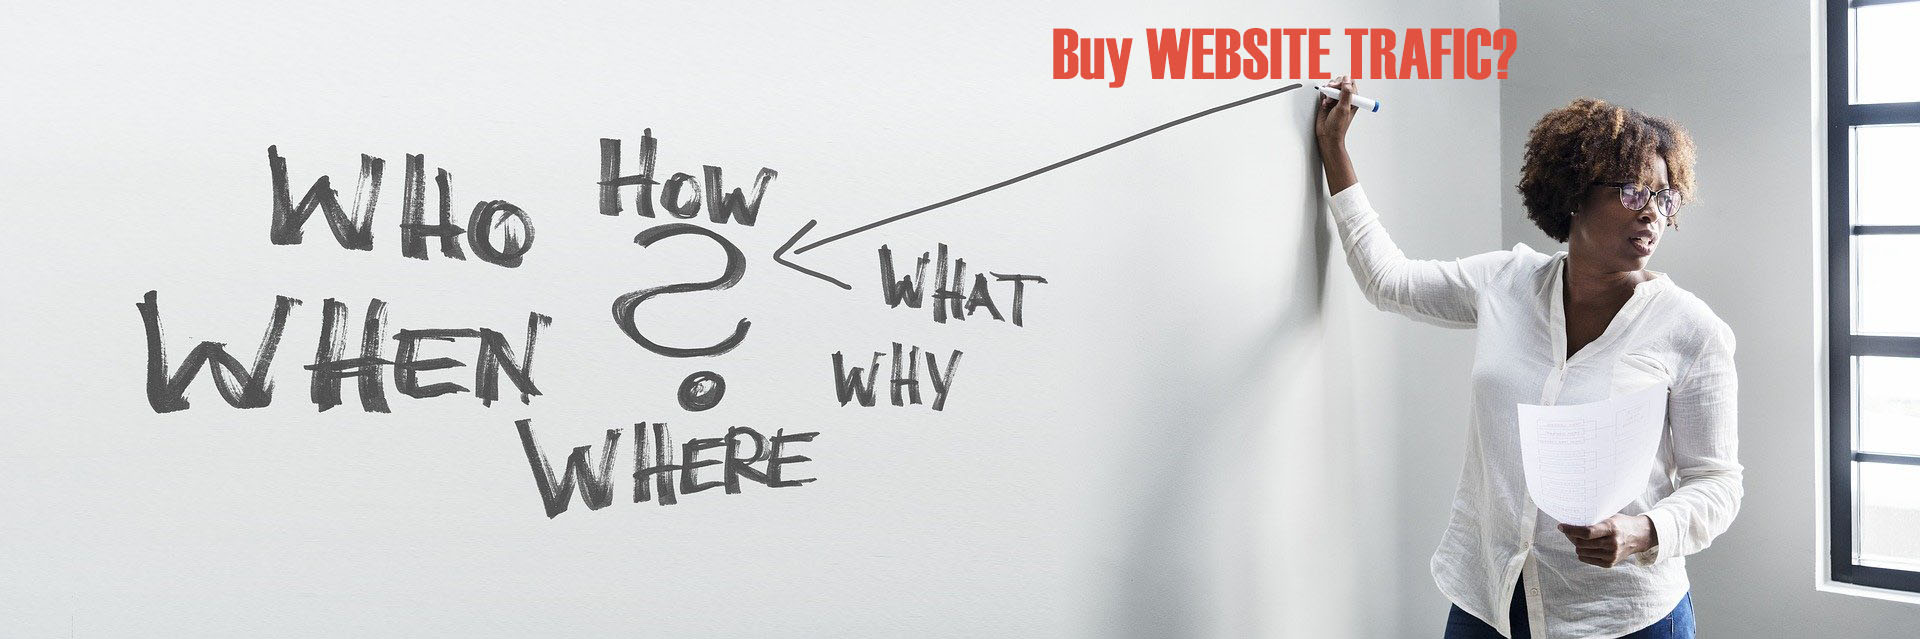 How To Buy Traffic To Your Website